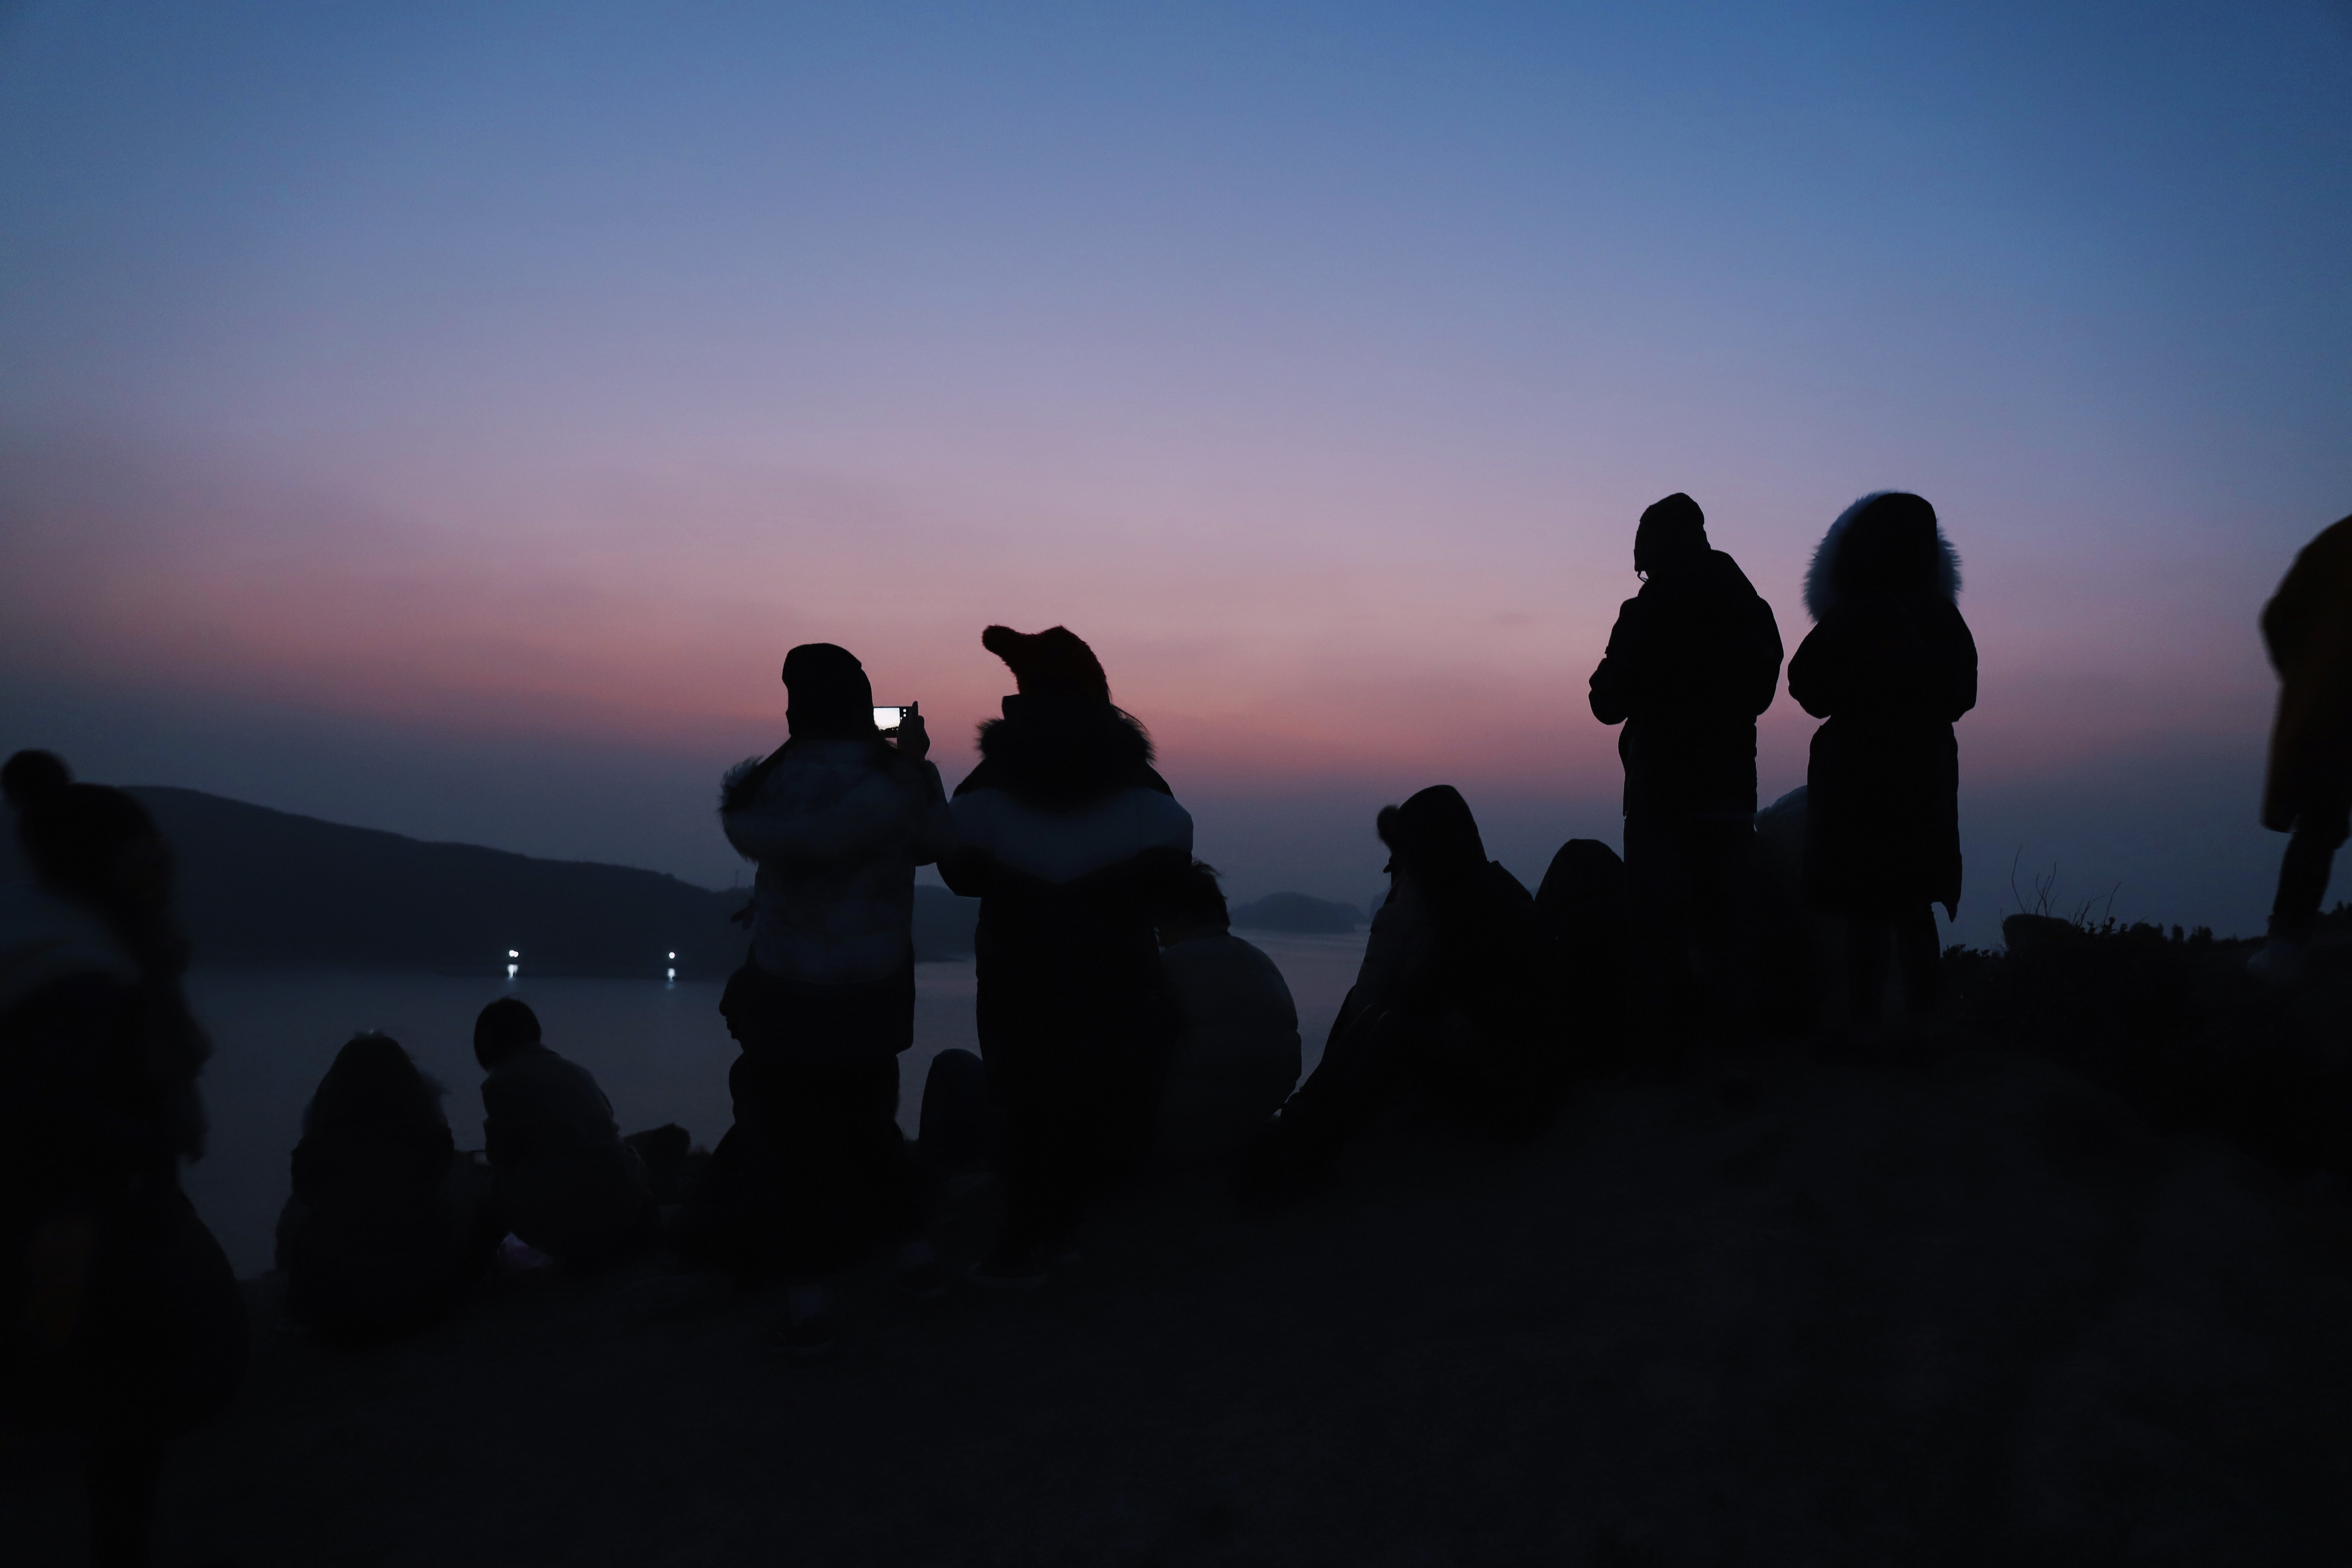 silhouette of people near body of water